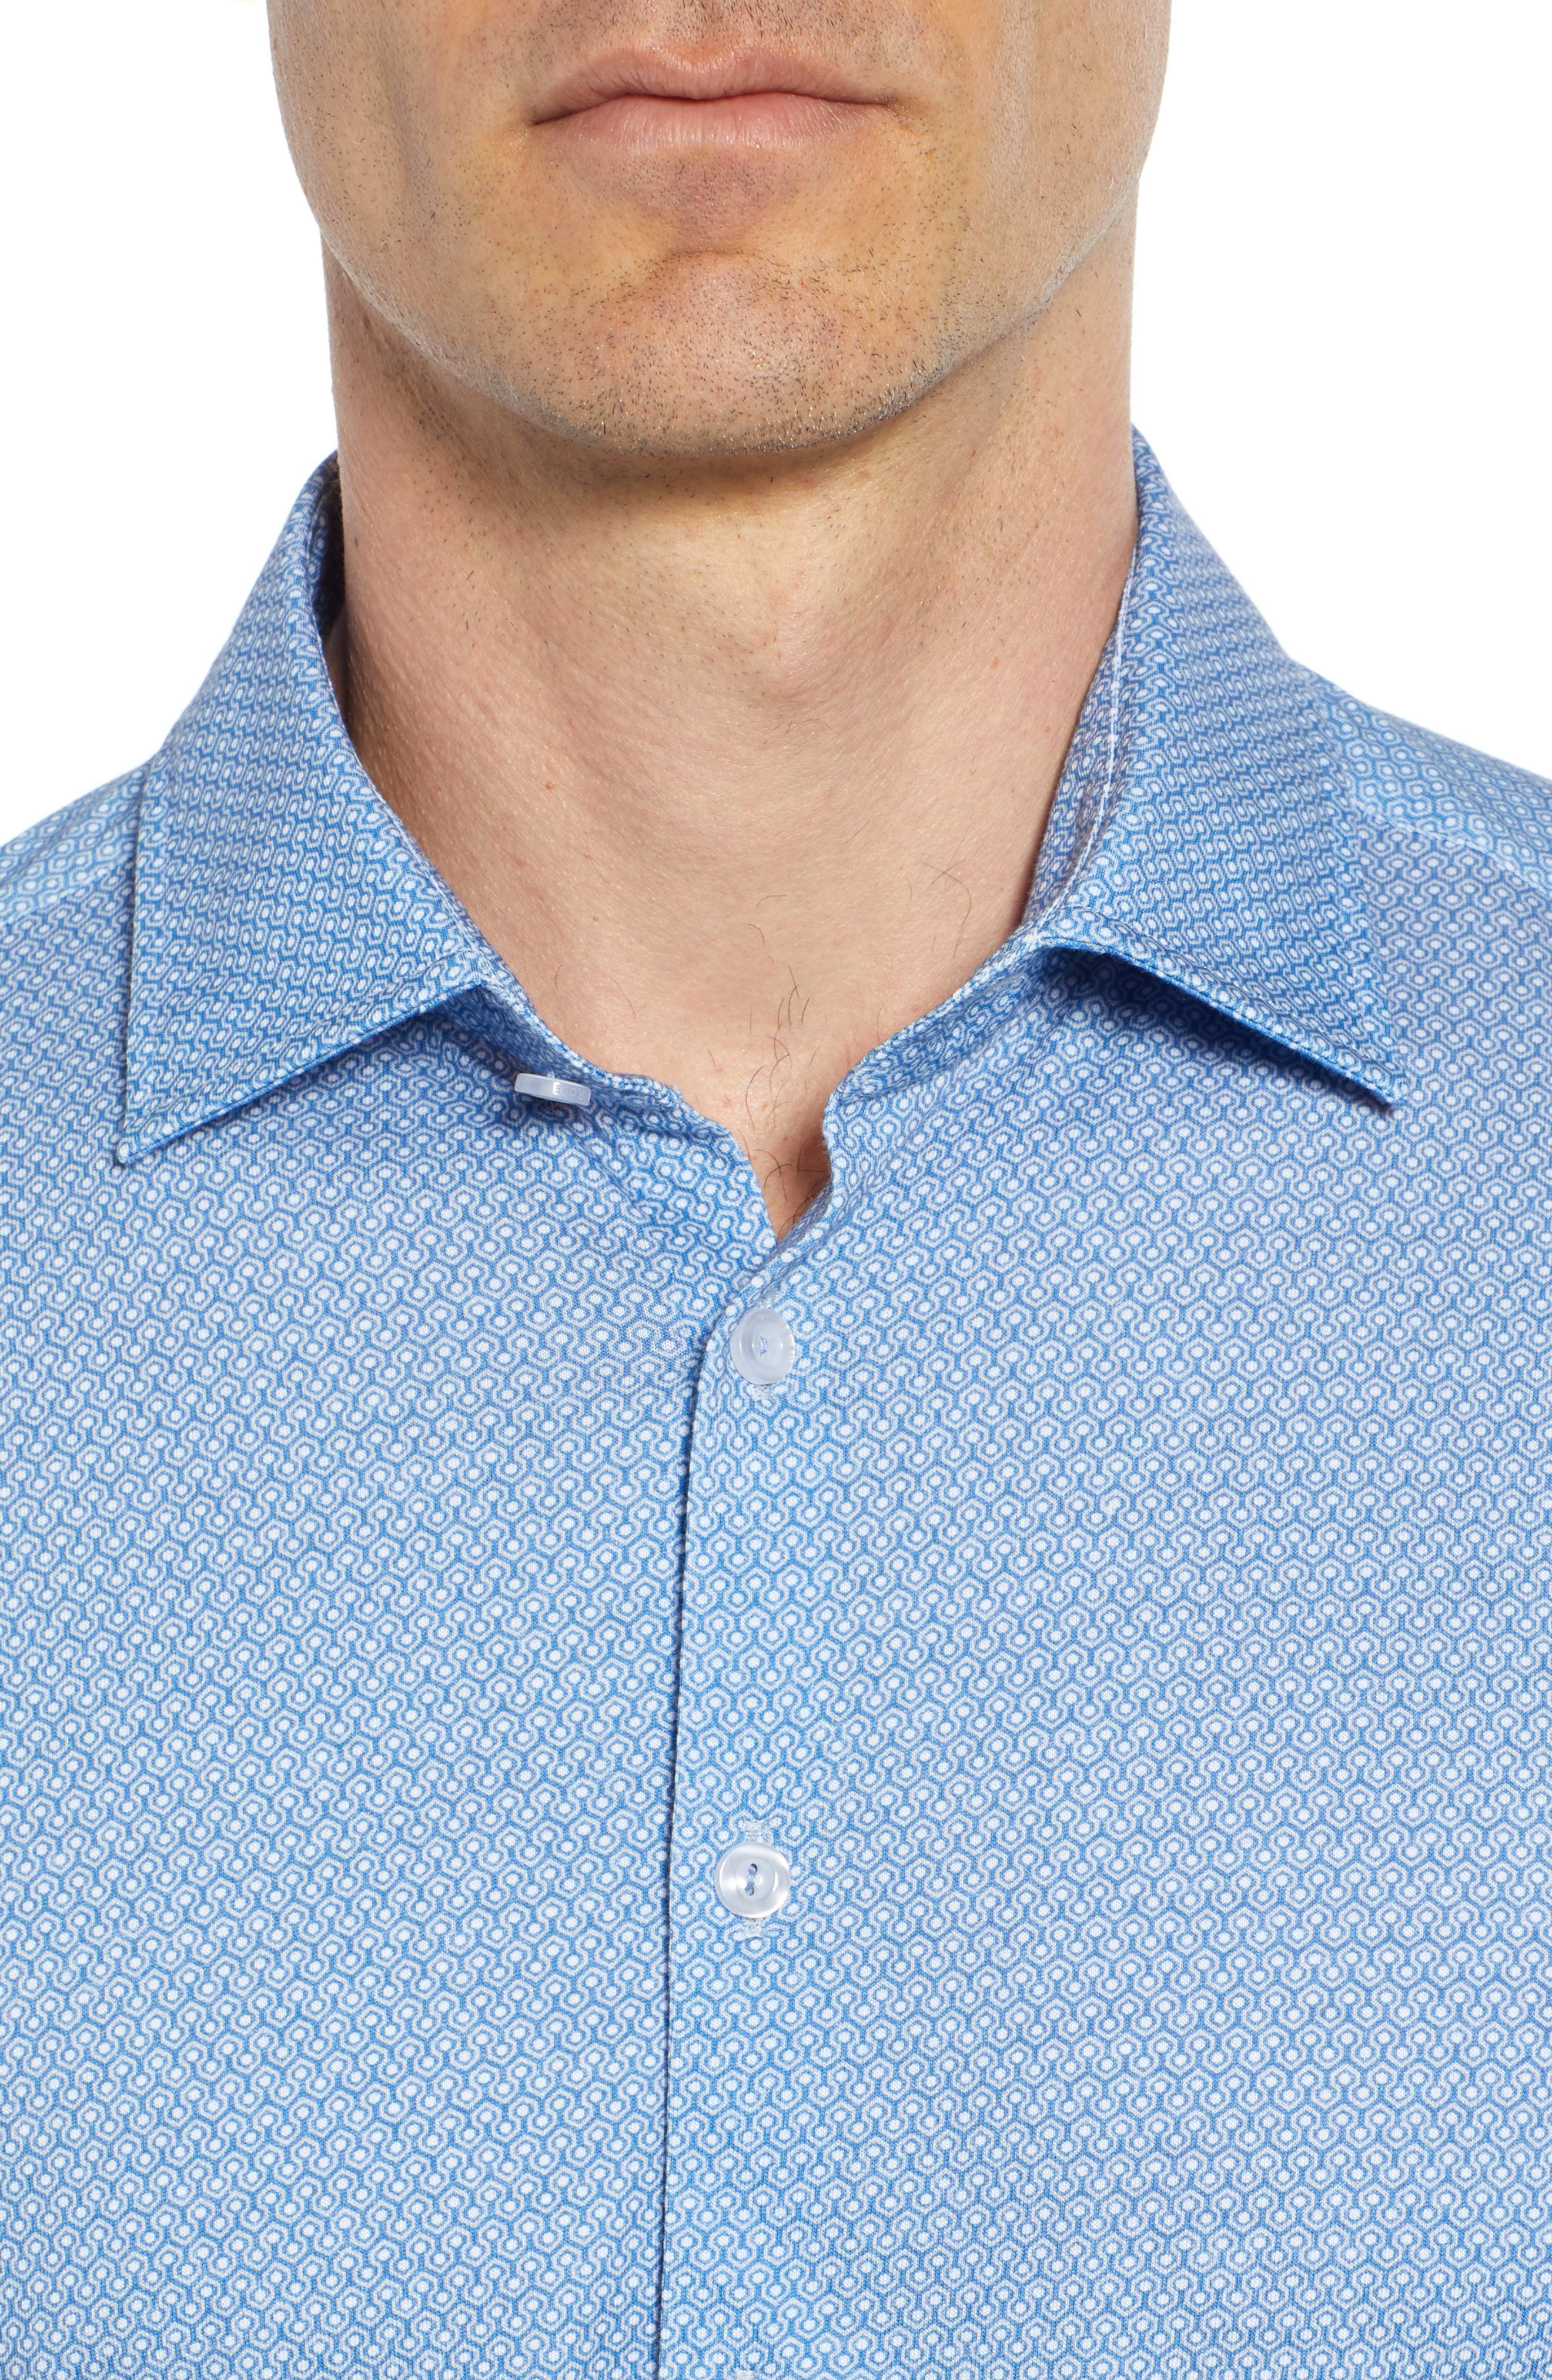 Honeycomb Print Knit Sport Shirt,                             Alternate thumbnail 7, color,